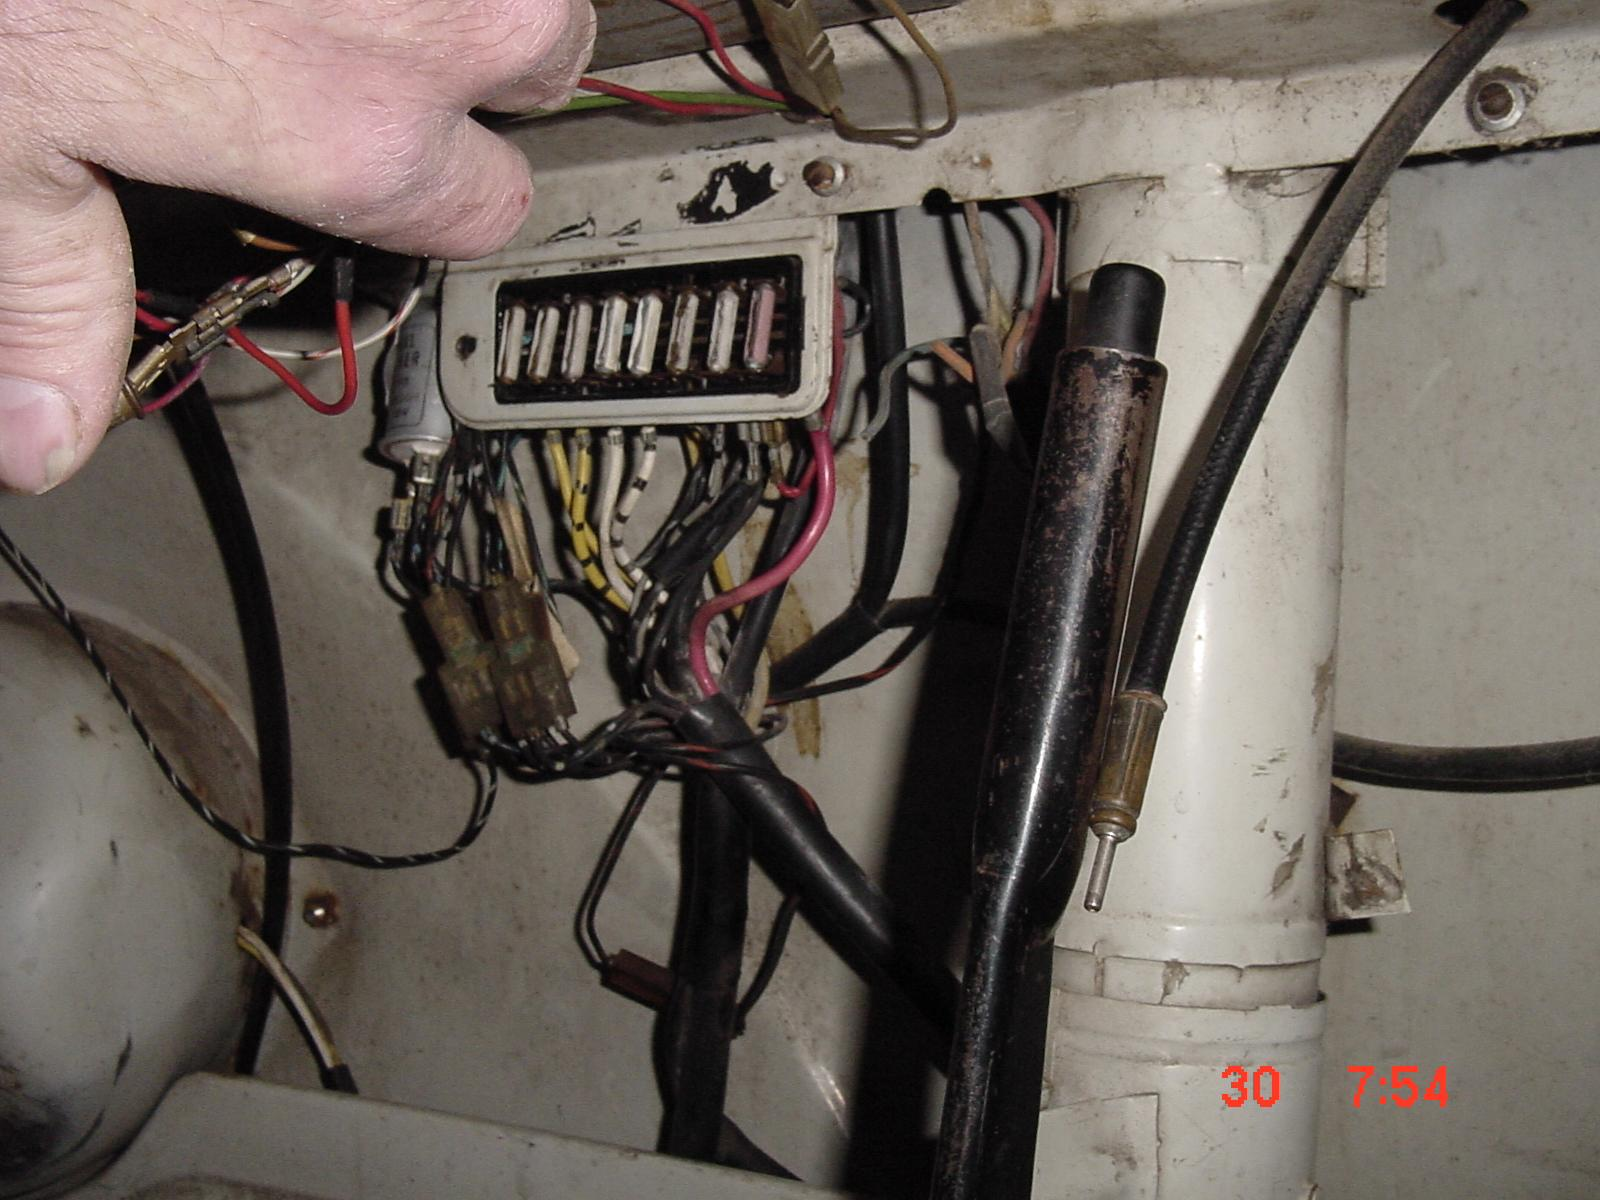 1273383 thesamba com gallery dec 1962 sc type 2 fuse box and wiring vw type 2 fuse box at mifinder.co